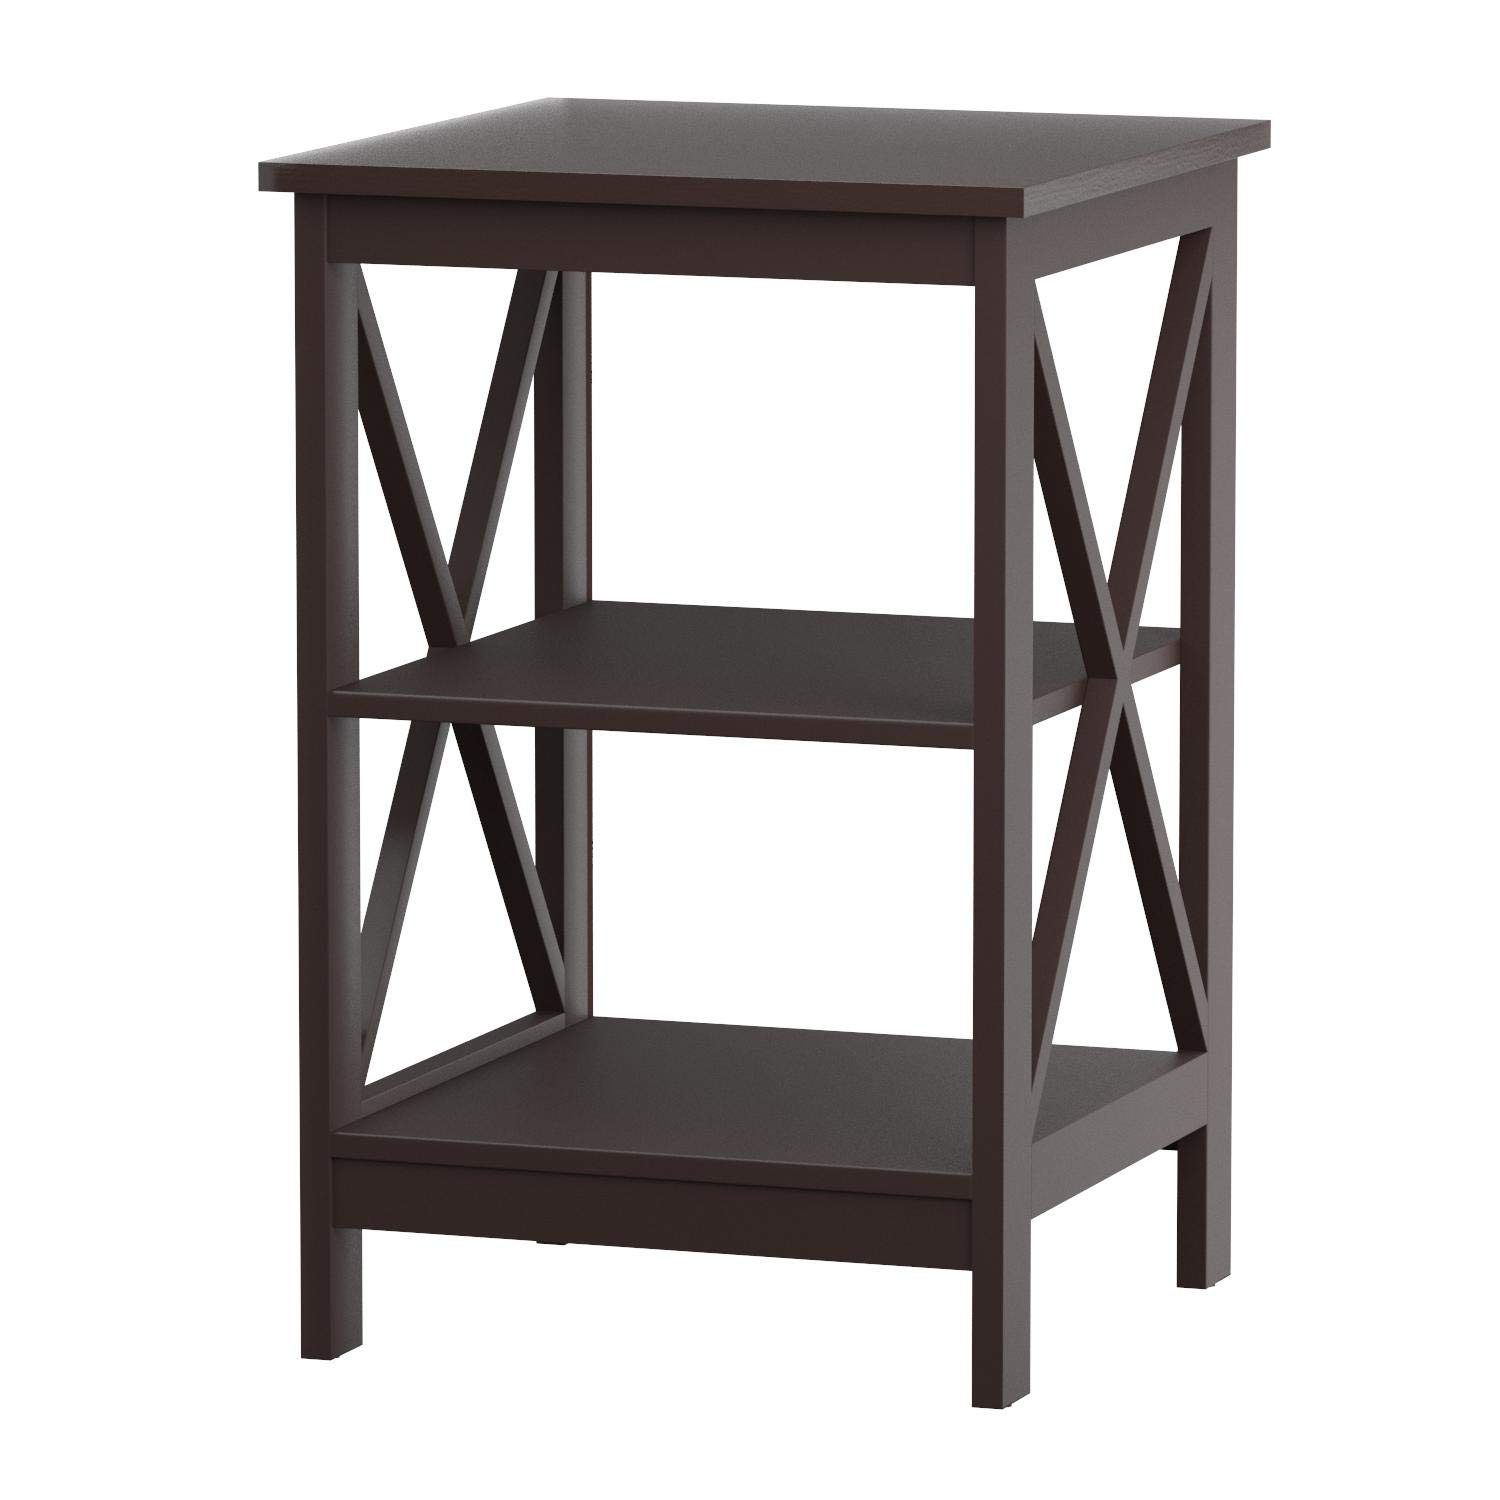 Convenience Concepts Oxford End Table, Espresso by Convenience Concepts